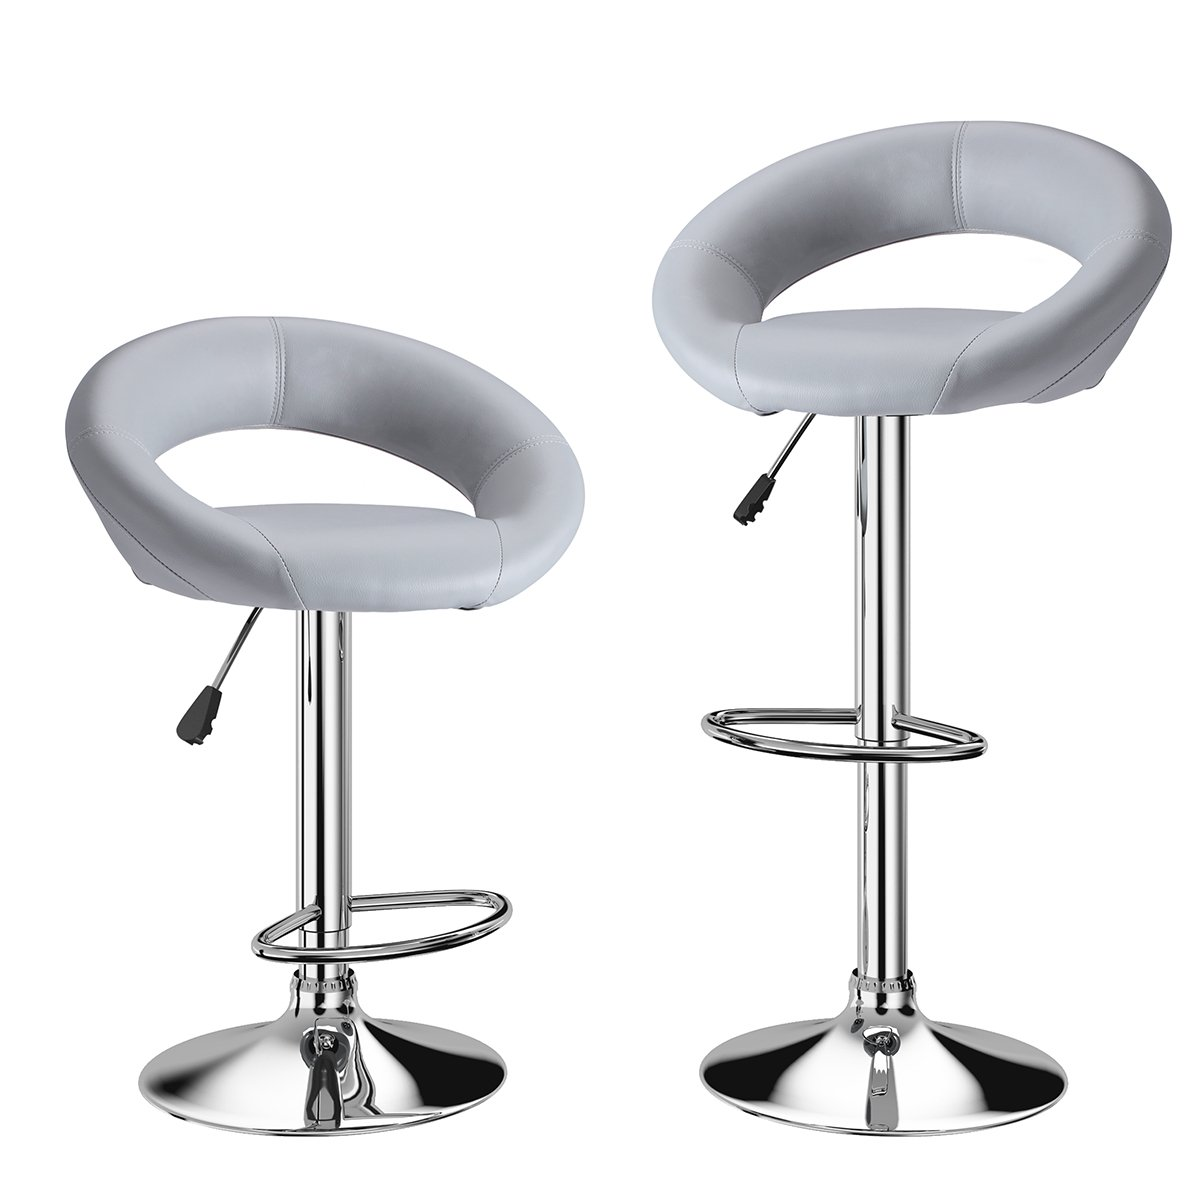 LANGRIA Set of 2 Faux Leather Bar Stools with Low Crescent Backrest Chrome Footrest and Base, 360 Degree Swivel Adjustable Height Max. 120kg for Counter Bar Pub and Kitchen (2x, Gray)